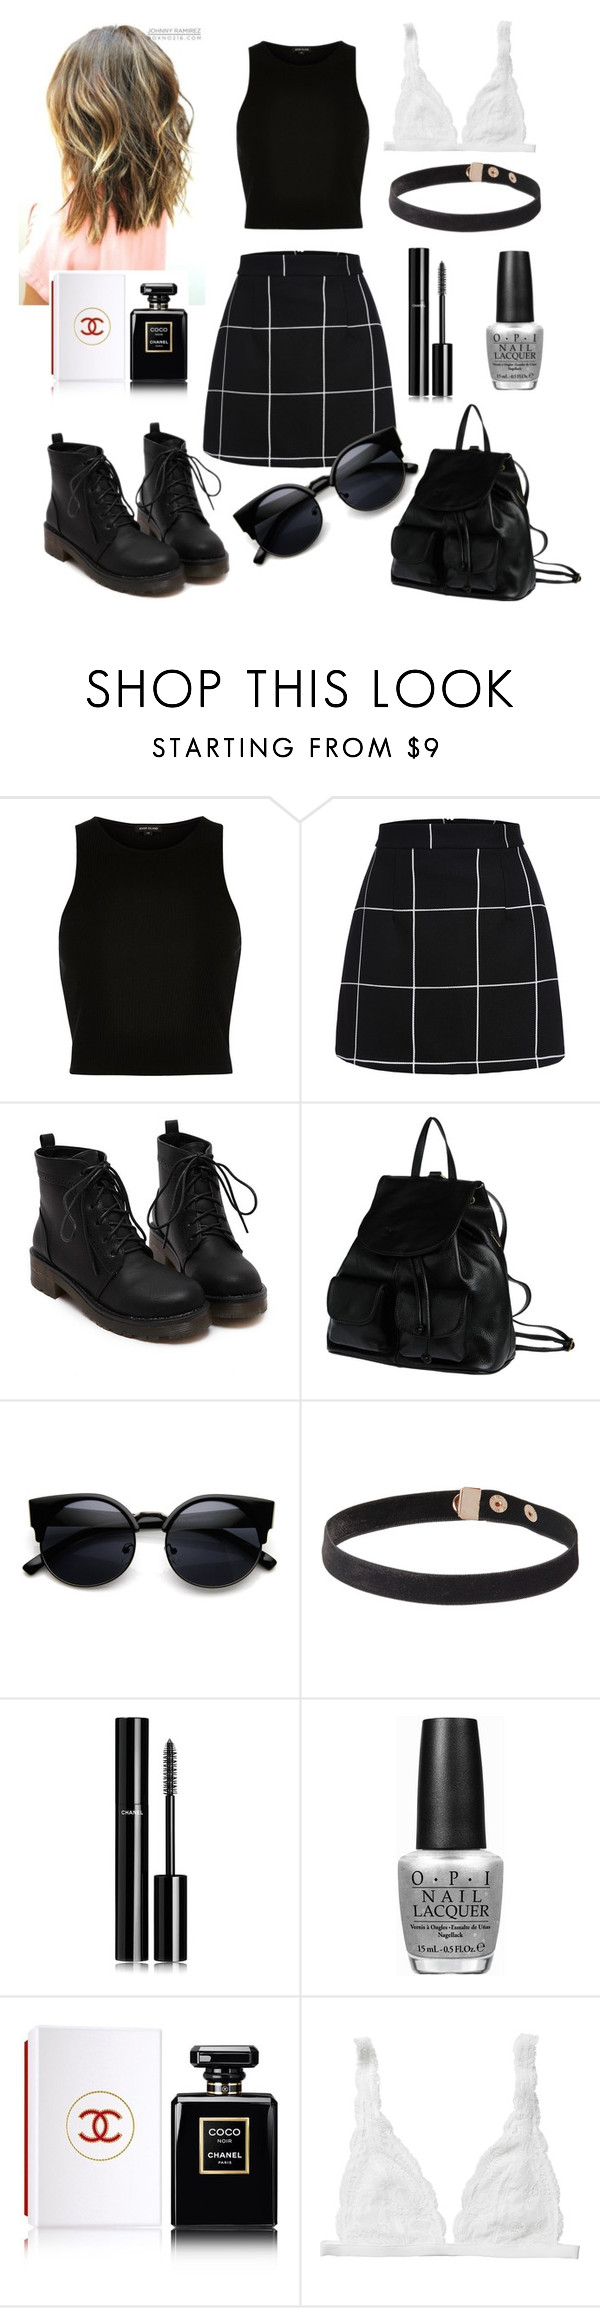 """.."" by andivesa ❤ liked on Polyvore featuring River Island, PARENTESI, Chanel, OPI and Monki"